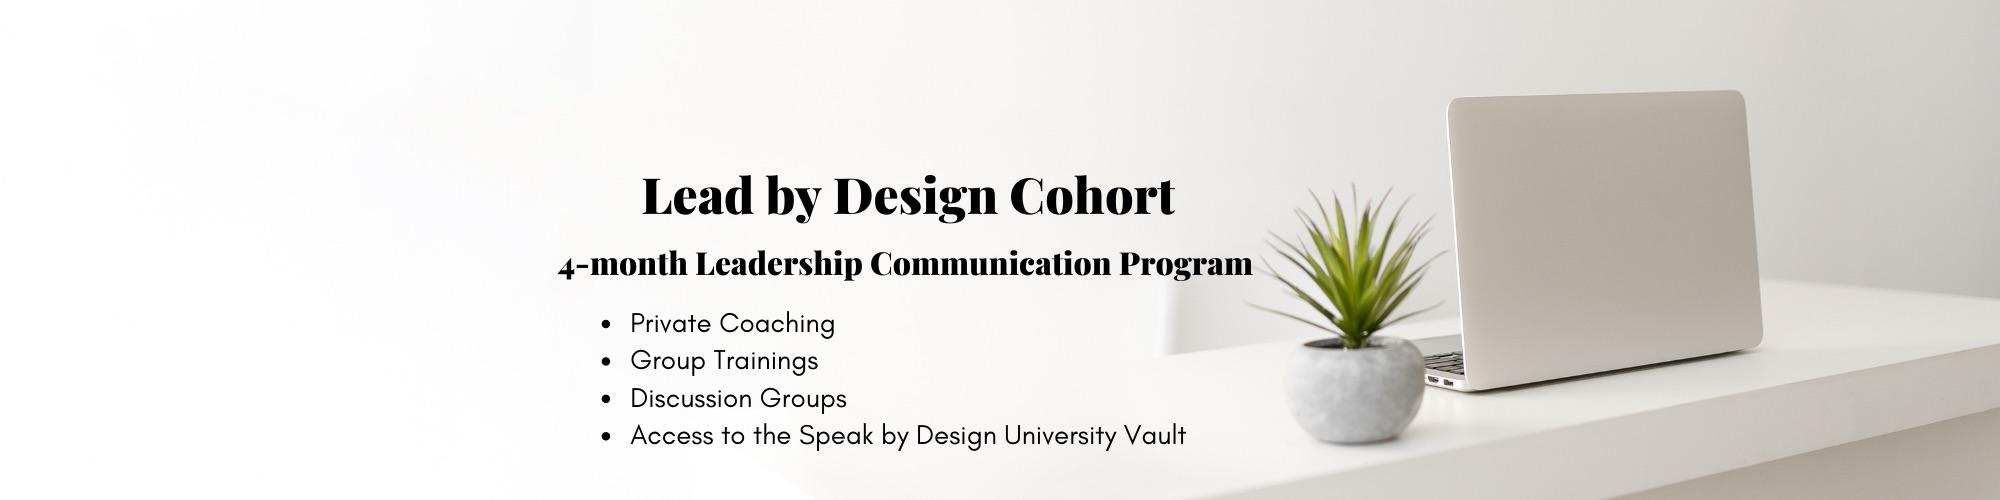 Lead by Design Cohort